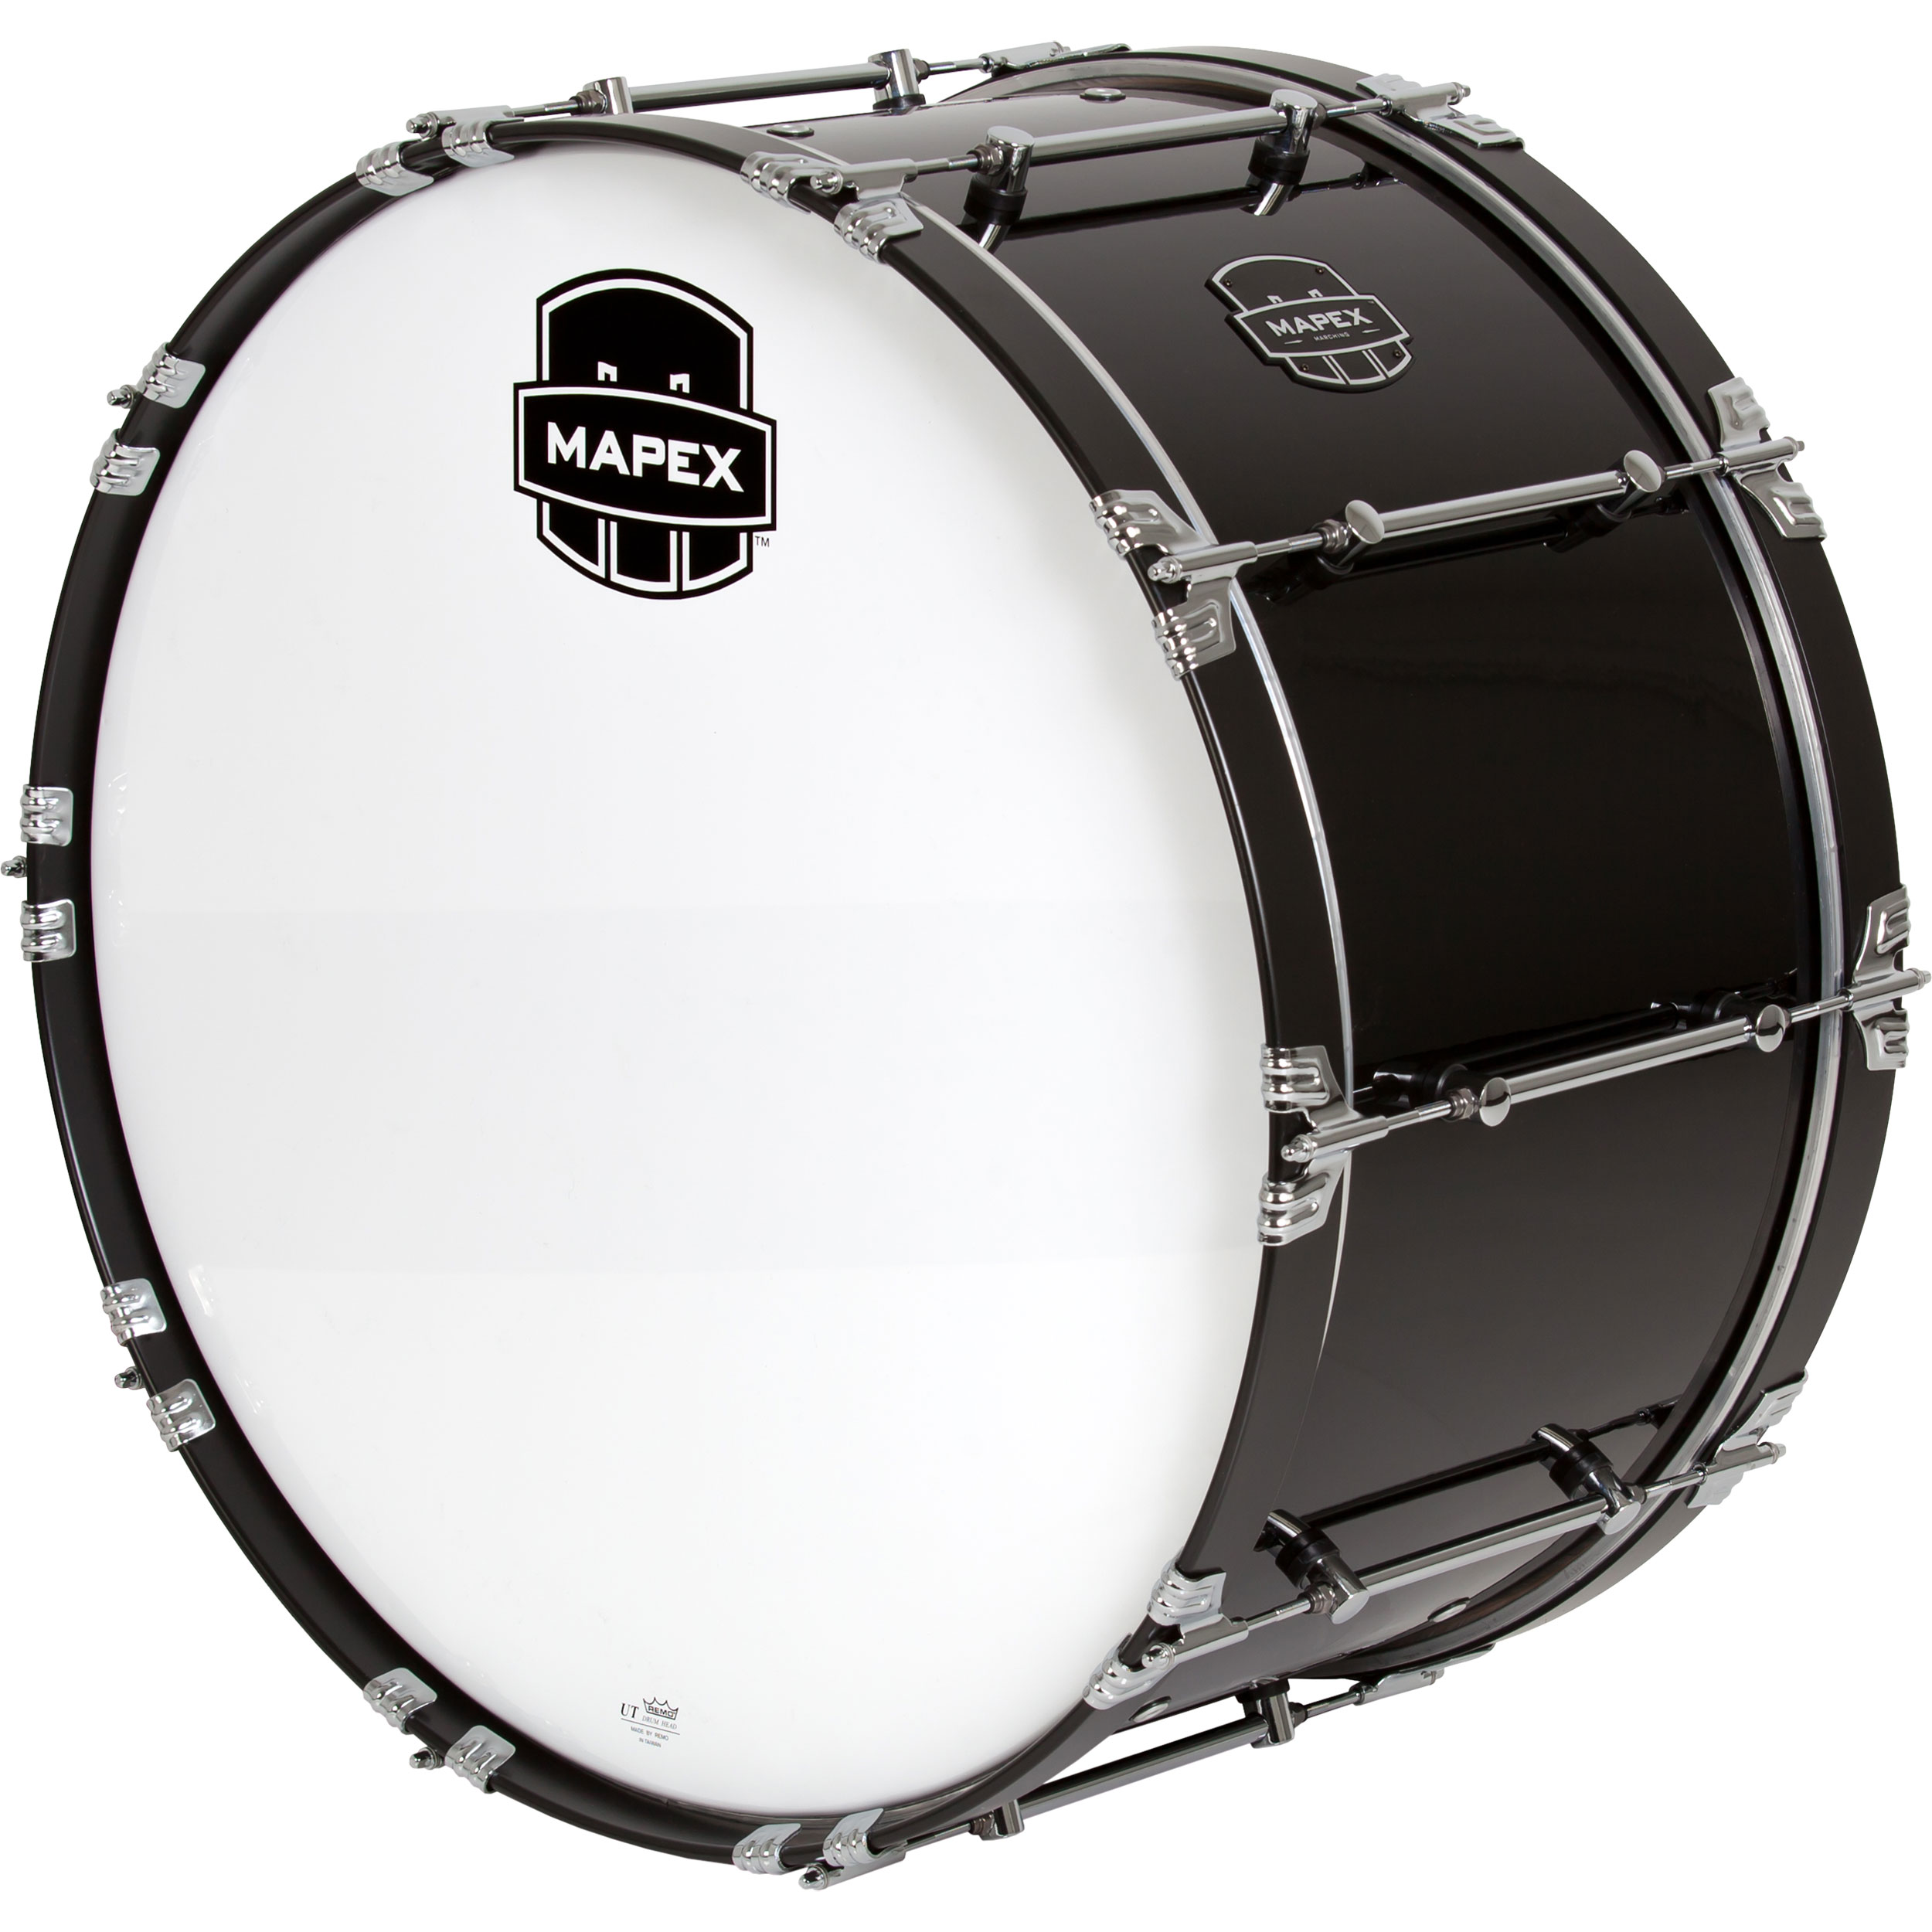 "Mapex 28"" x 14"" Quantum Mark II Marching Bass Drum in Gloss Black"